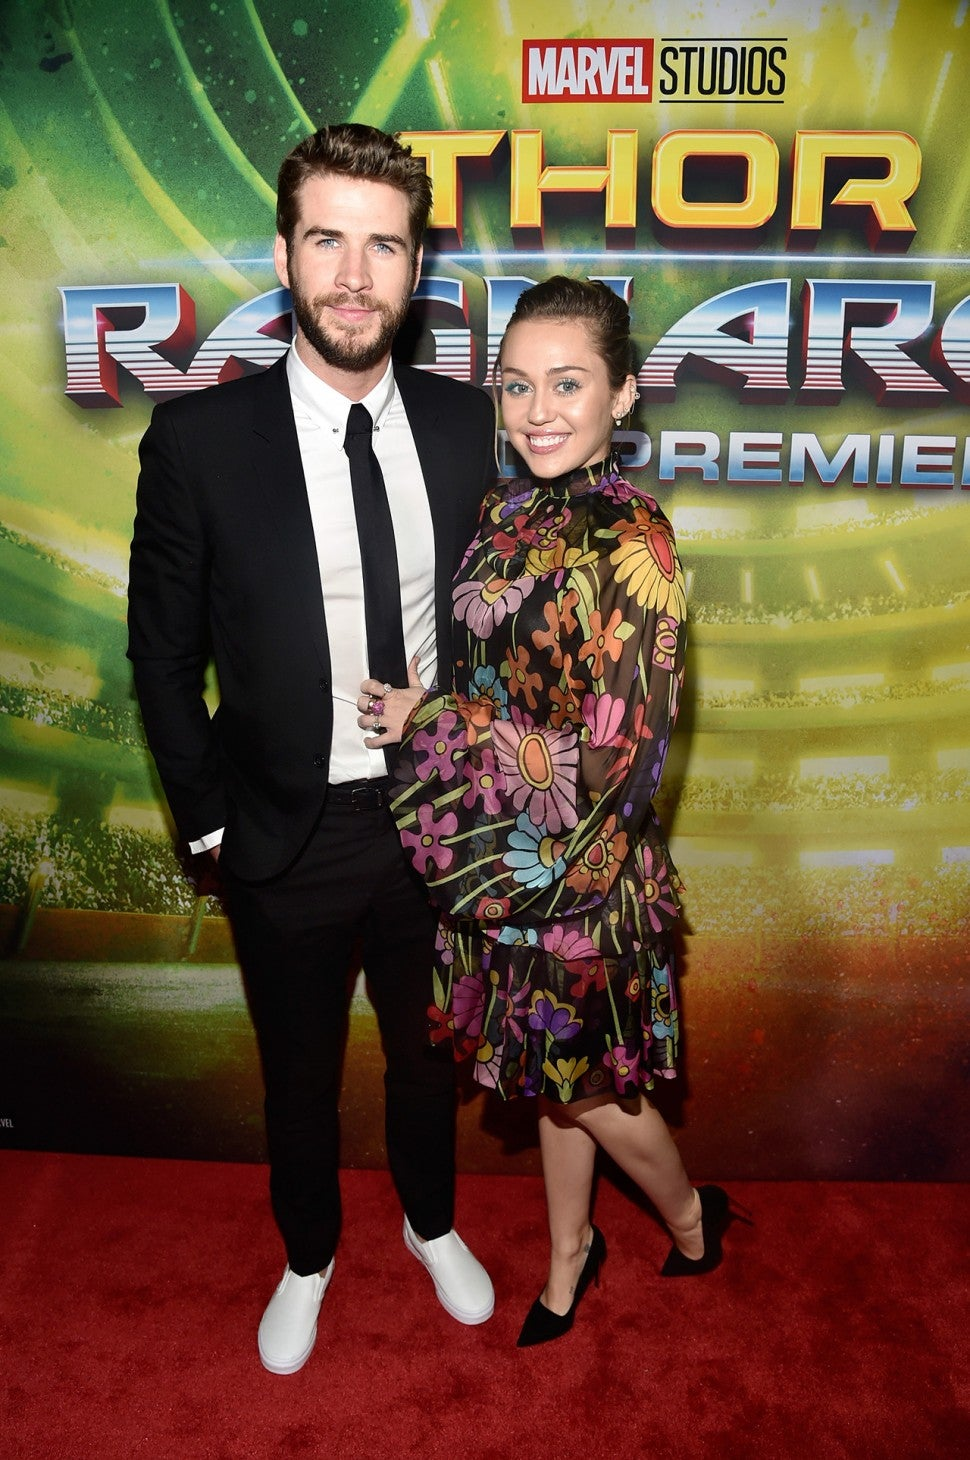 Liam Hemsworth and Miley Cyrus at 'Thor' premiere